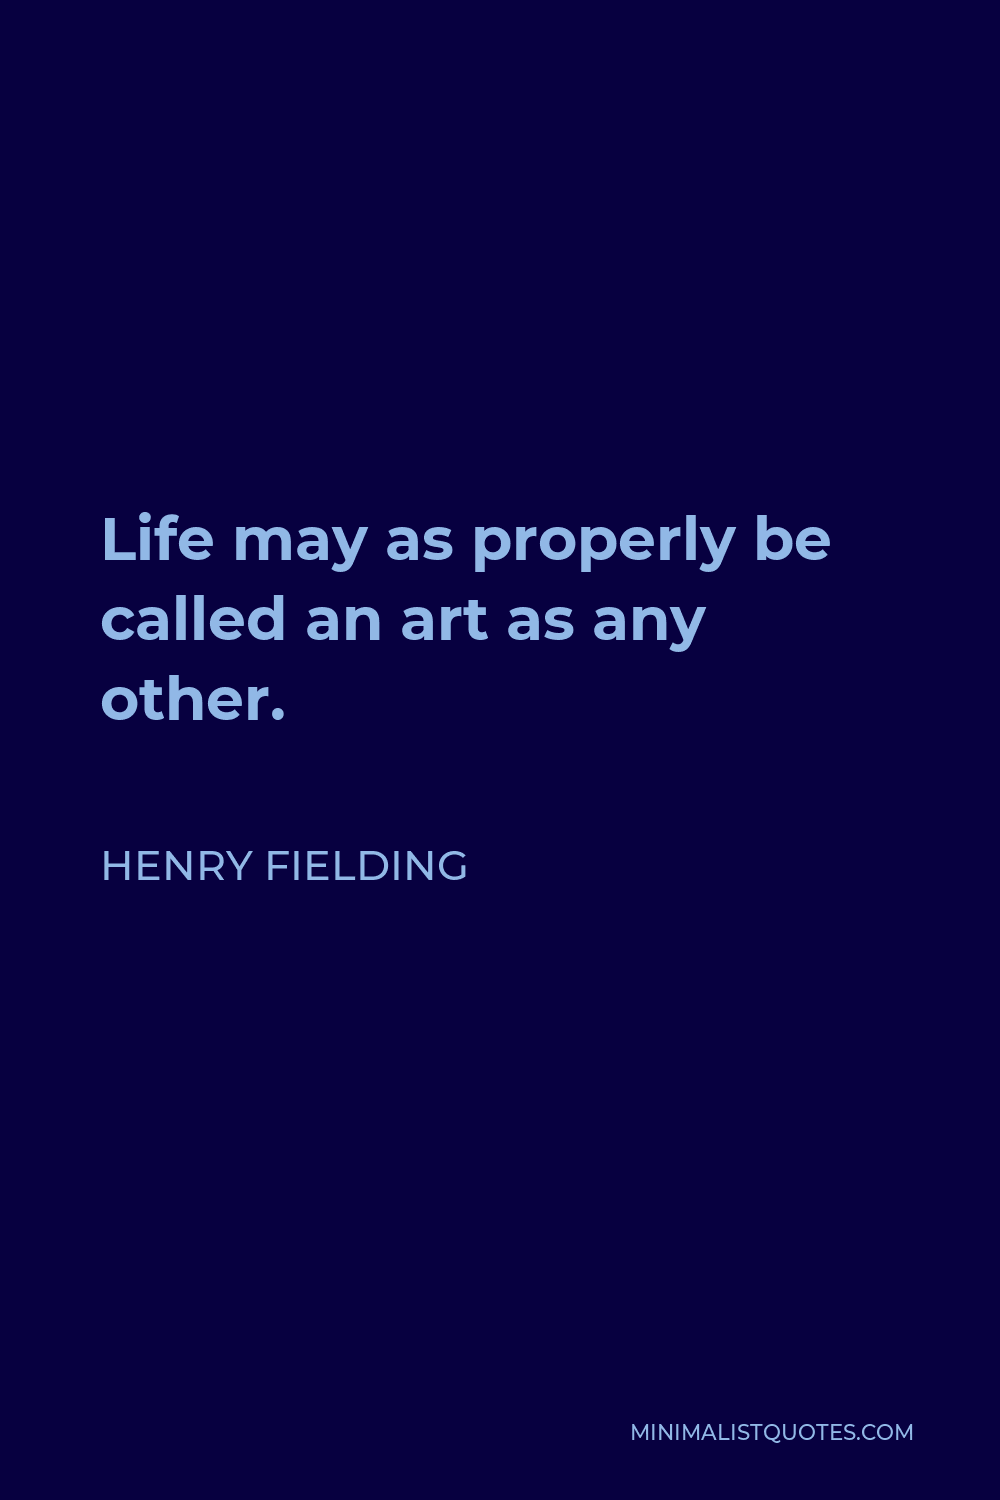 Henry Fielding Quote - Life may as properly be called an art as any other.